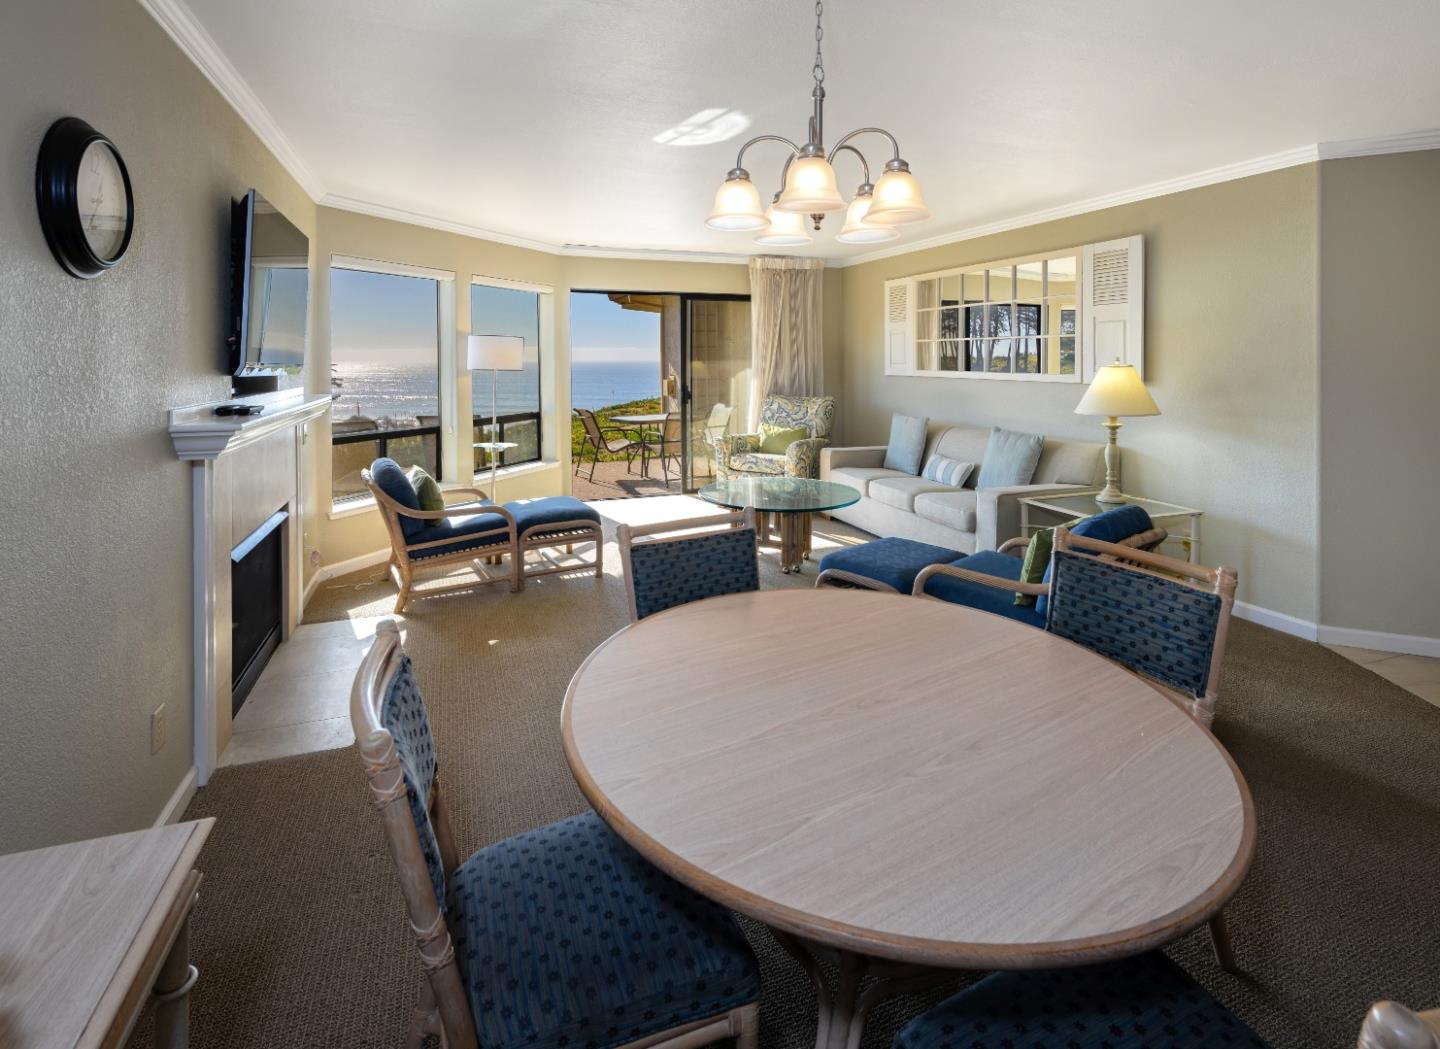 Beautifully remodeled, ground floor two bedroom two bath fully furnished ocean view condominium at the Seascape resort in Aptos. Enjoy the three pools and spas, golf and tennis nearby and miles of white sandy beach.